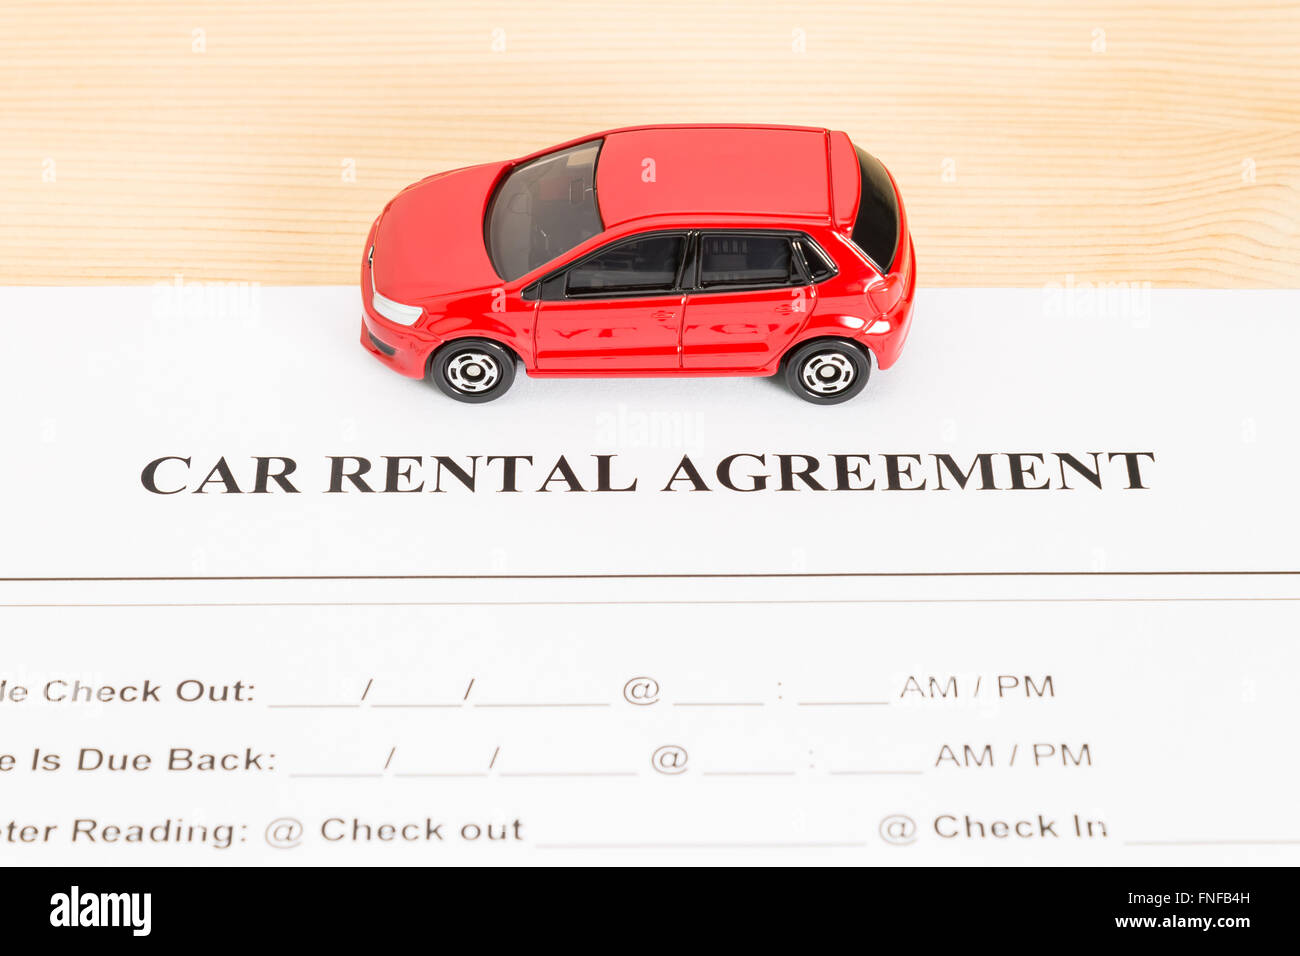 Apr 15, · Compare and book cheap Miami car rentals with jedemipan.tk Rent a car in Miami, Florida and find the best discounts and deals today.